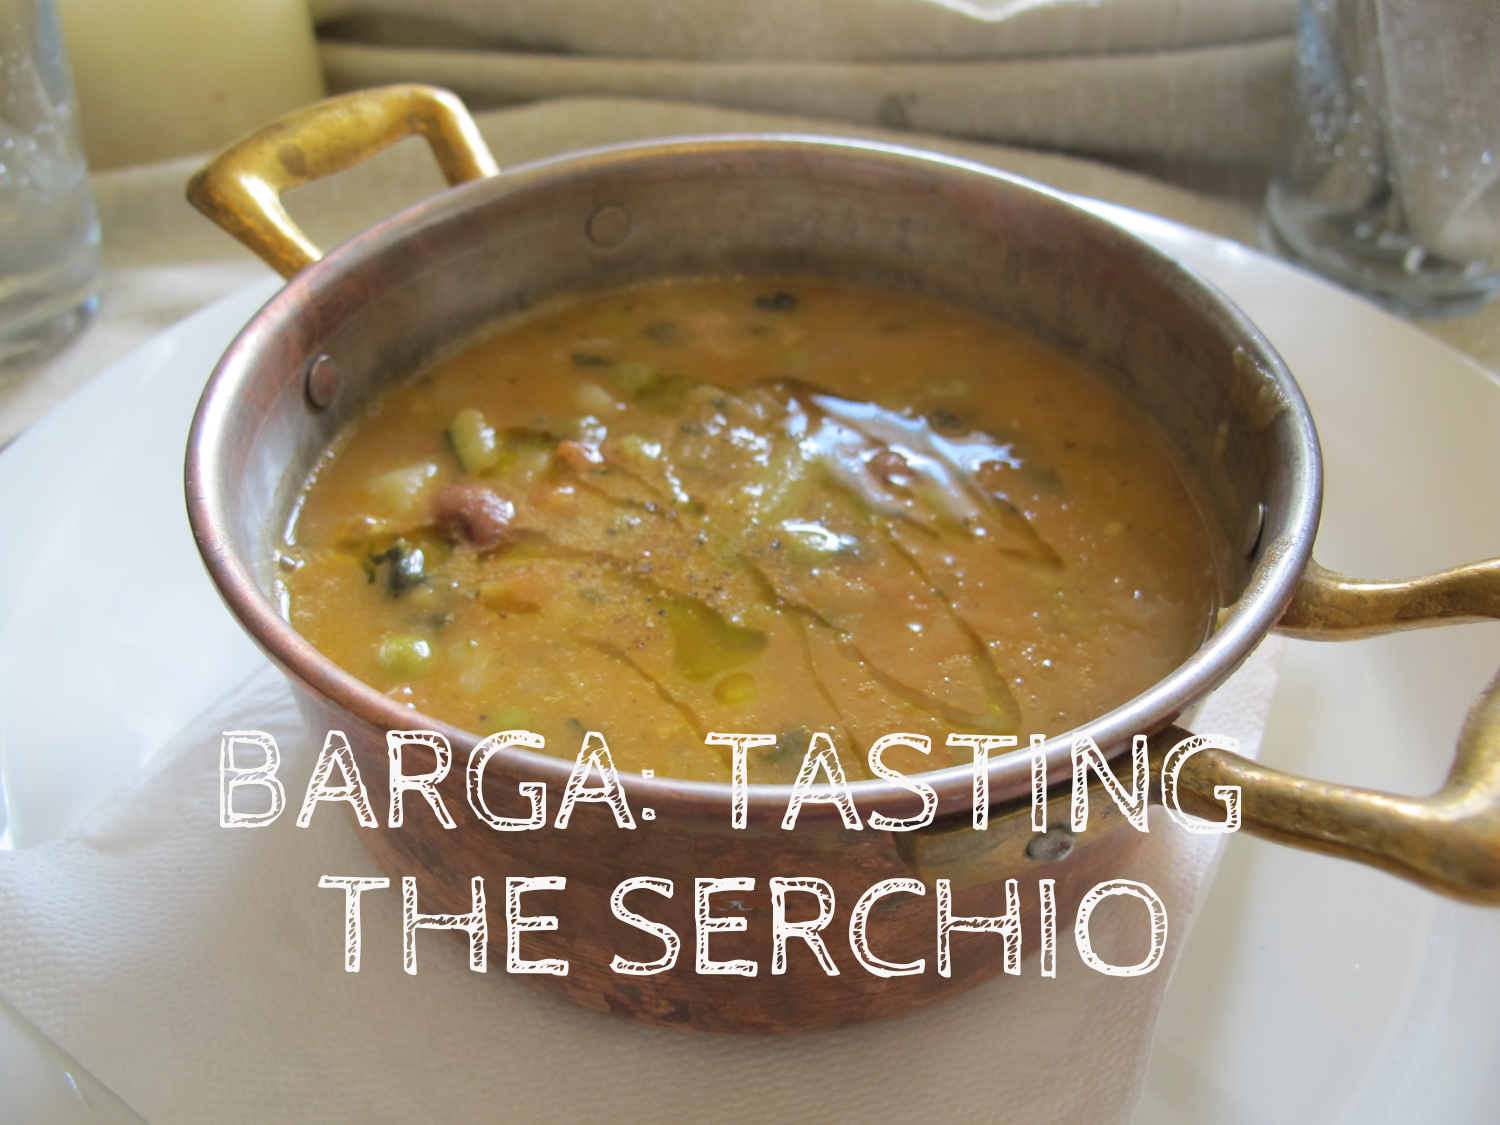 Barga: Tasting The Serchio